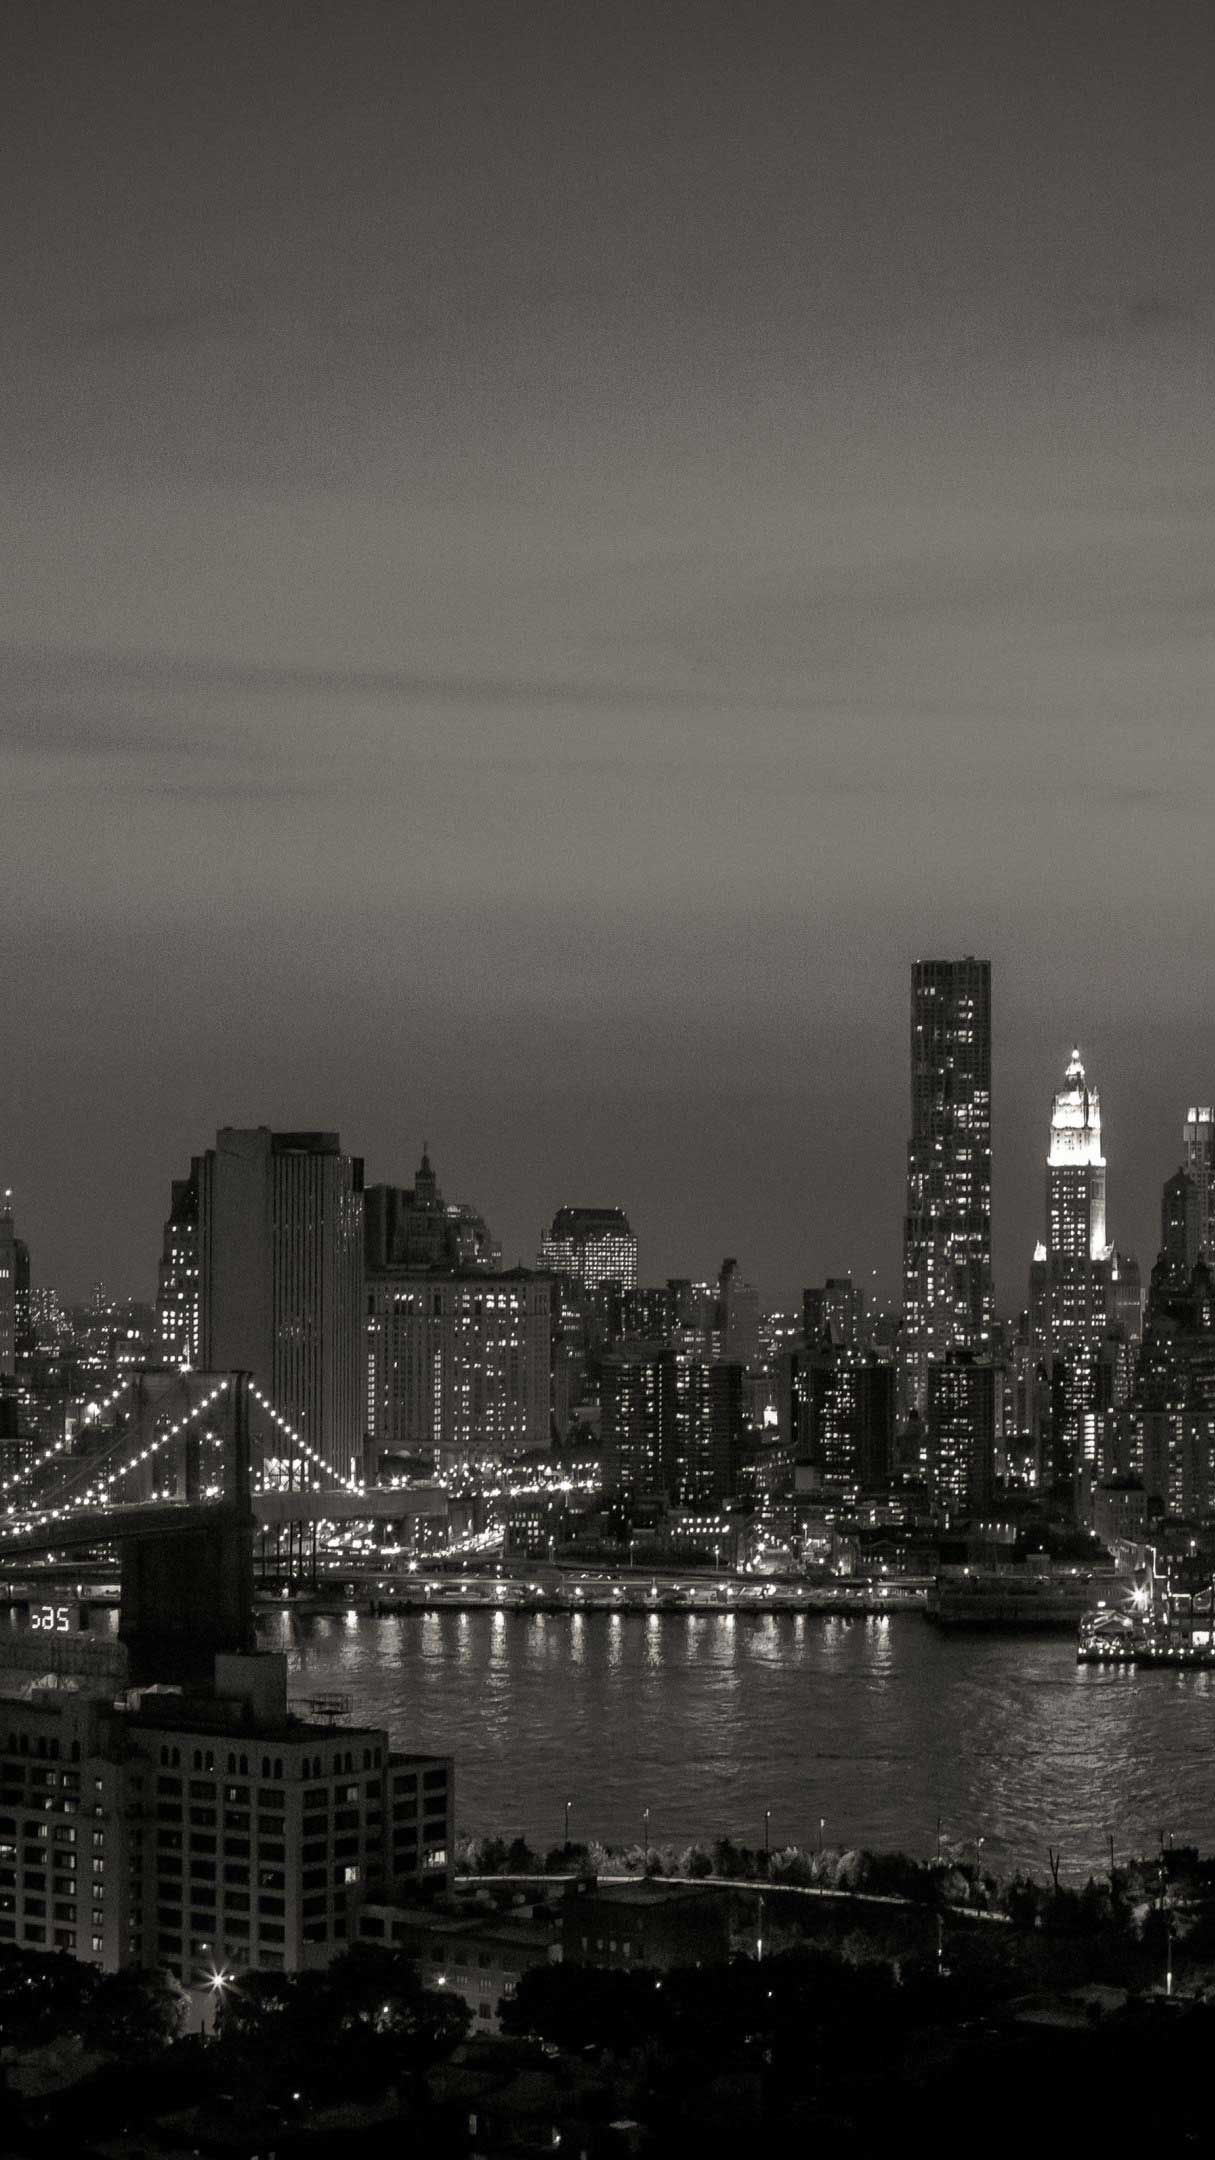 New York City Black And White Wallpaper Iphone Wallpapers Hd Black And White Wallpaper Iphone White Wallpaper For Iphone New York Iphone Wallpaper